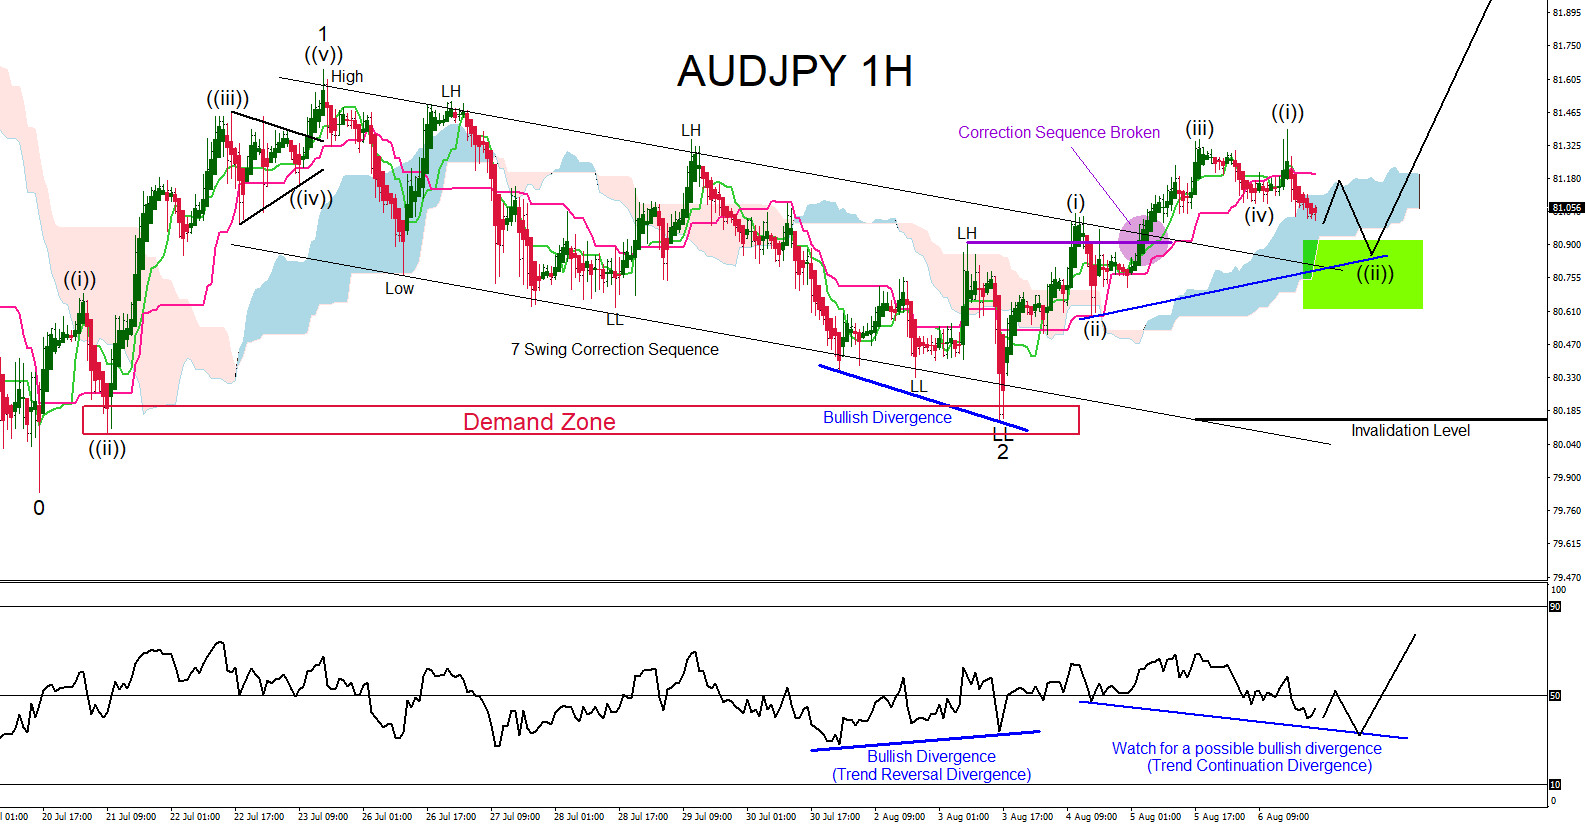 AUDJPY : Will the Pair Rally Higher?